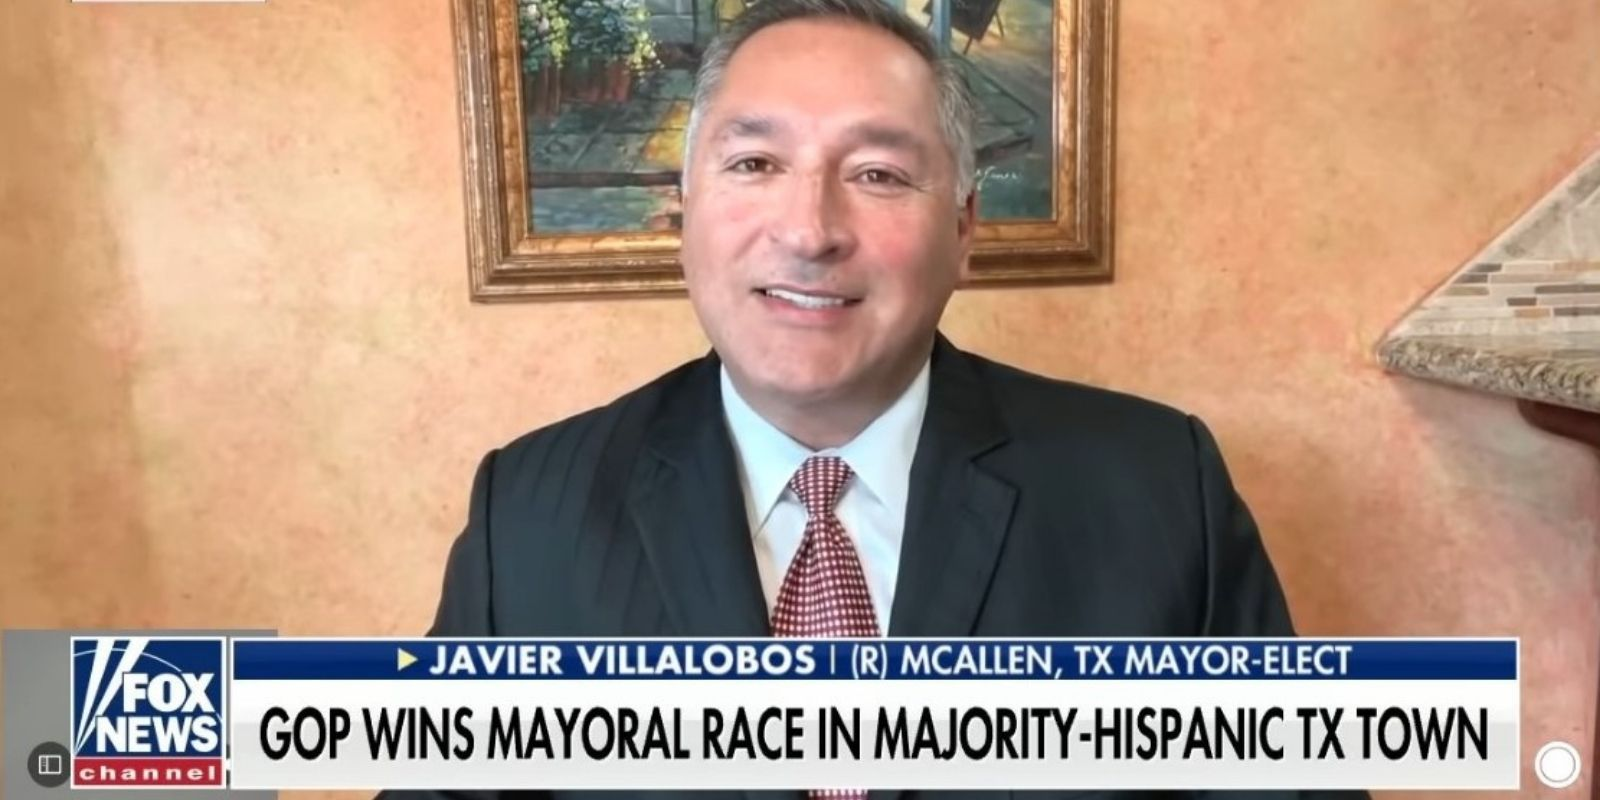 WATCH: Republican mayor-elect who flipped Texas border town says Hispanic voters are 'opening their eyes'